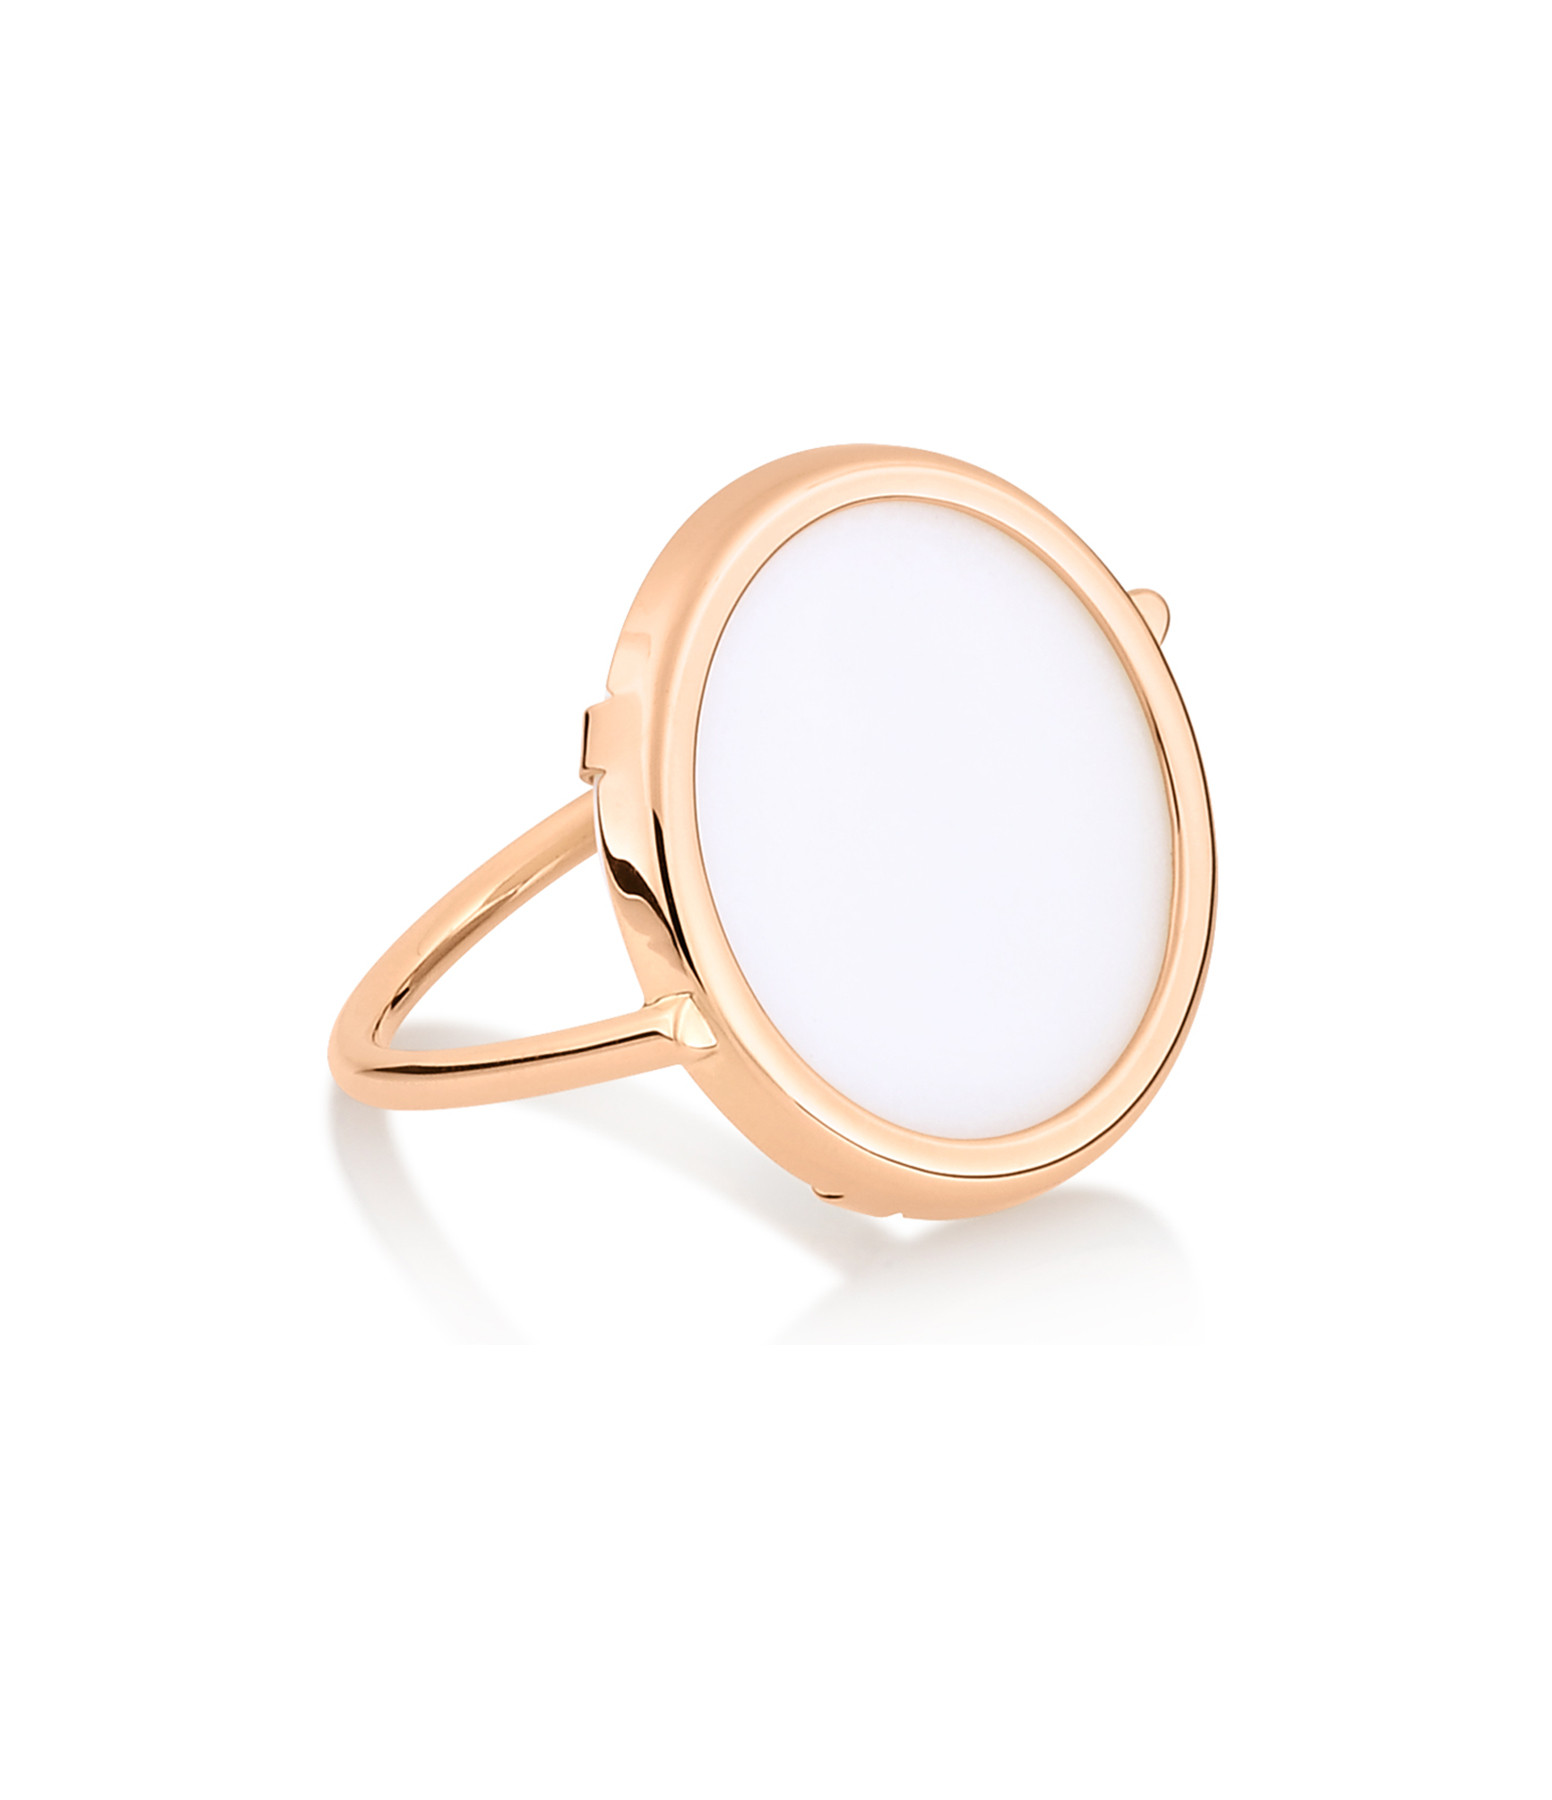 GINETTE NY - Bague Disc Or Rose Agate Blanche